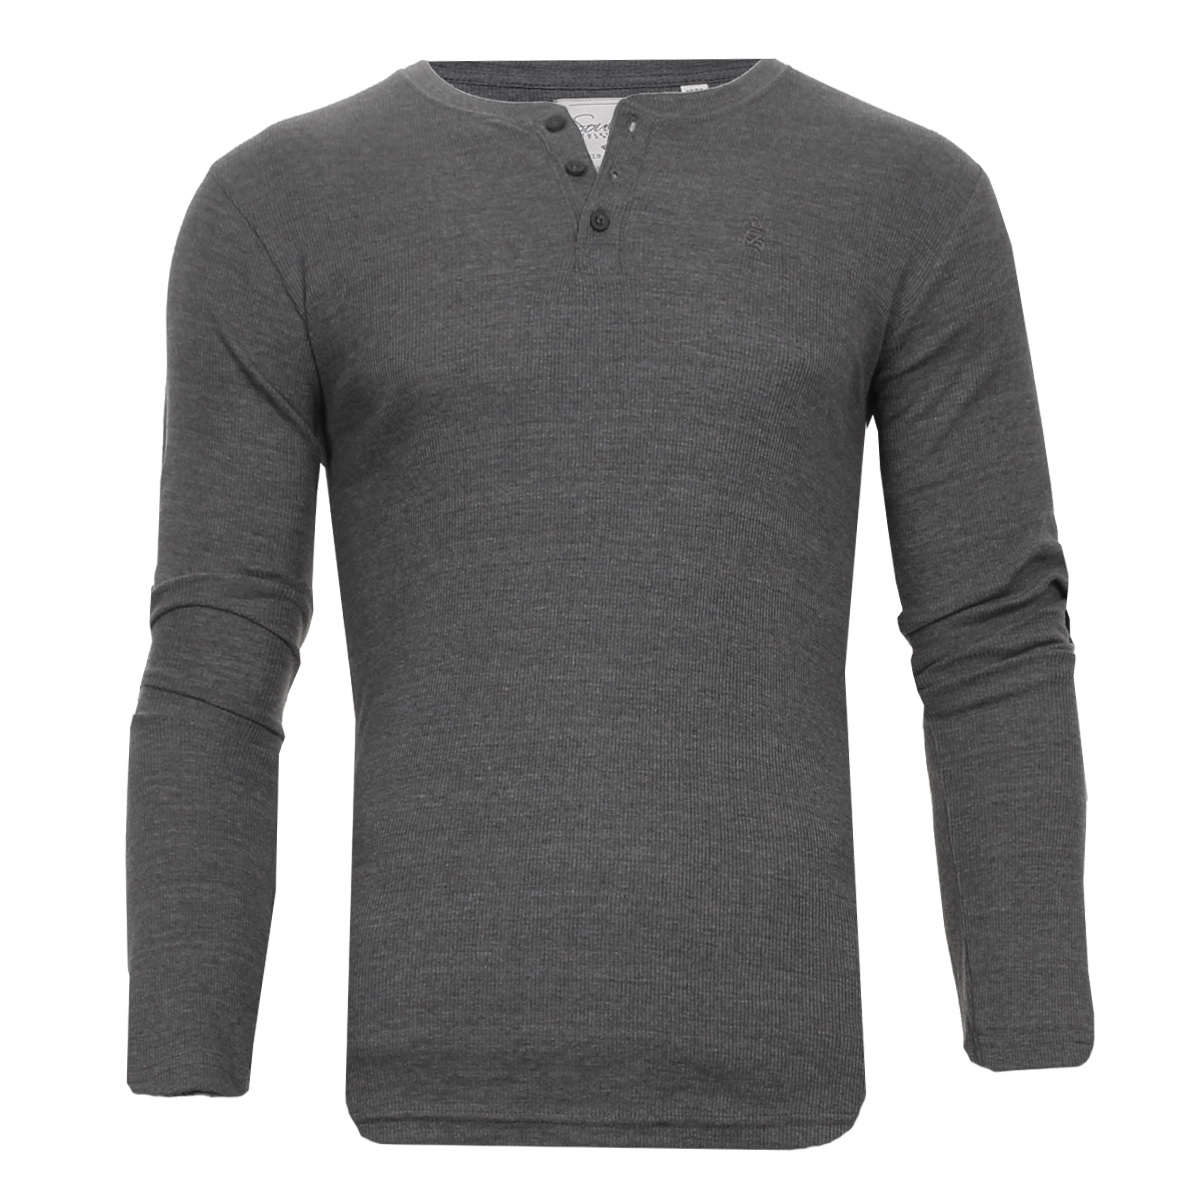 Men-Grandad-T-Shirt-Long-Sleeve-Jersey-Ribbed-Top-Cotton-Rich-Brave-Soul thumbnail 37